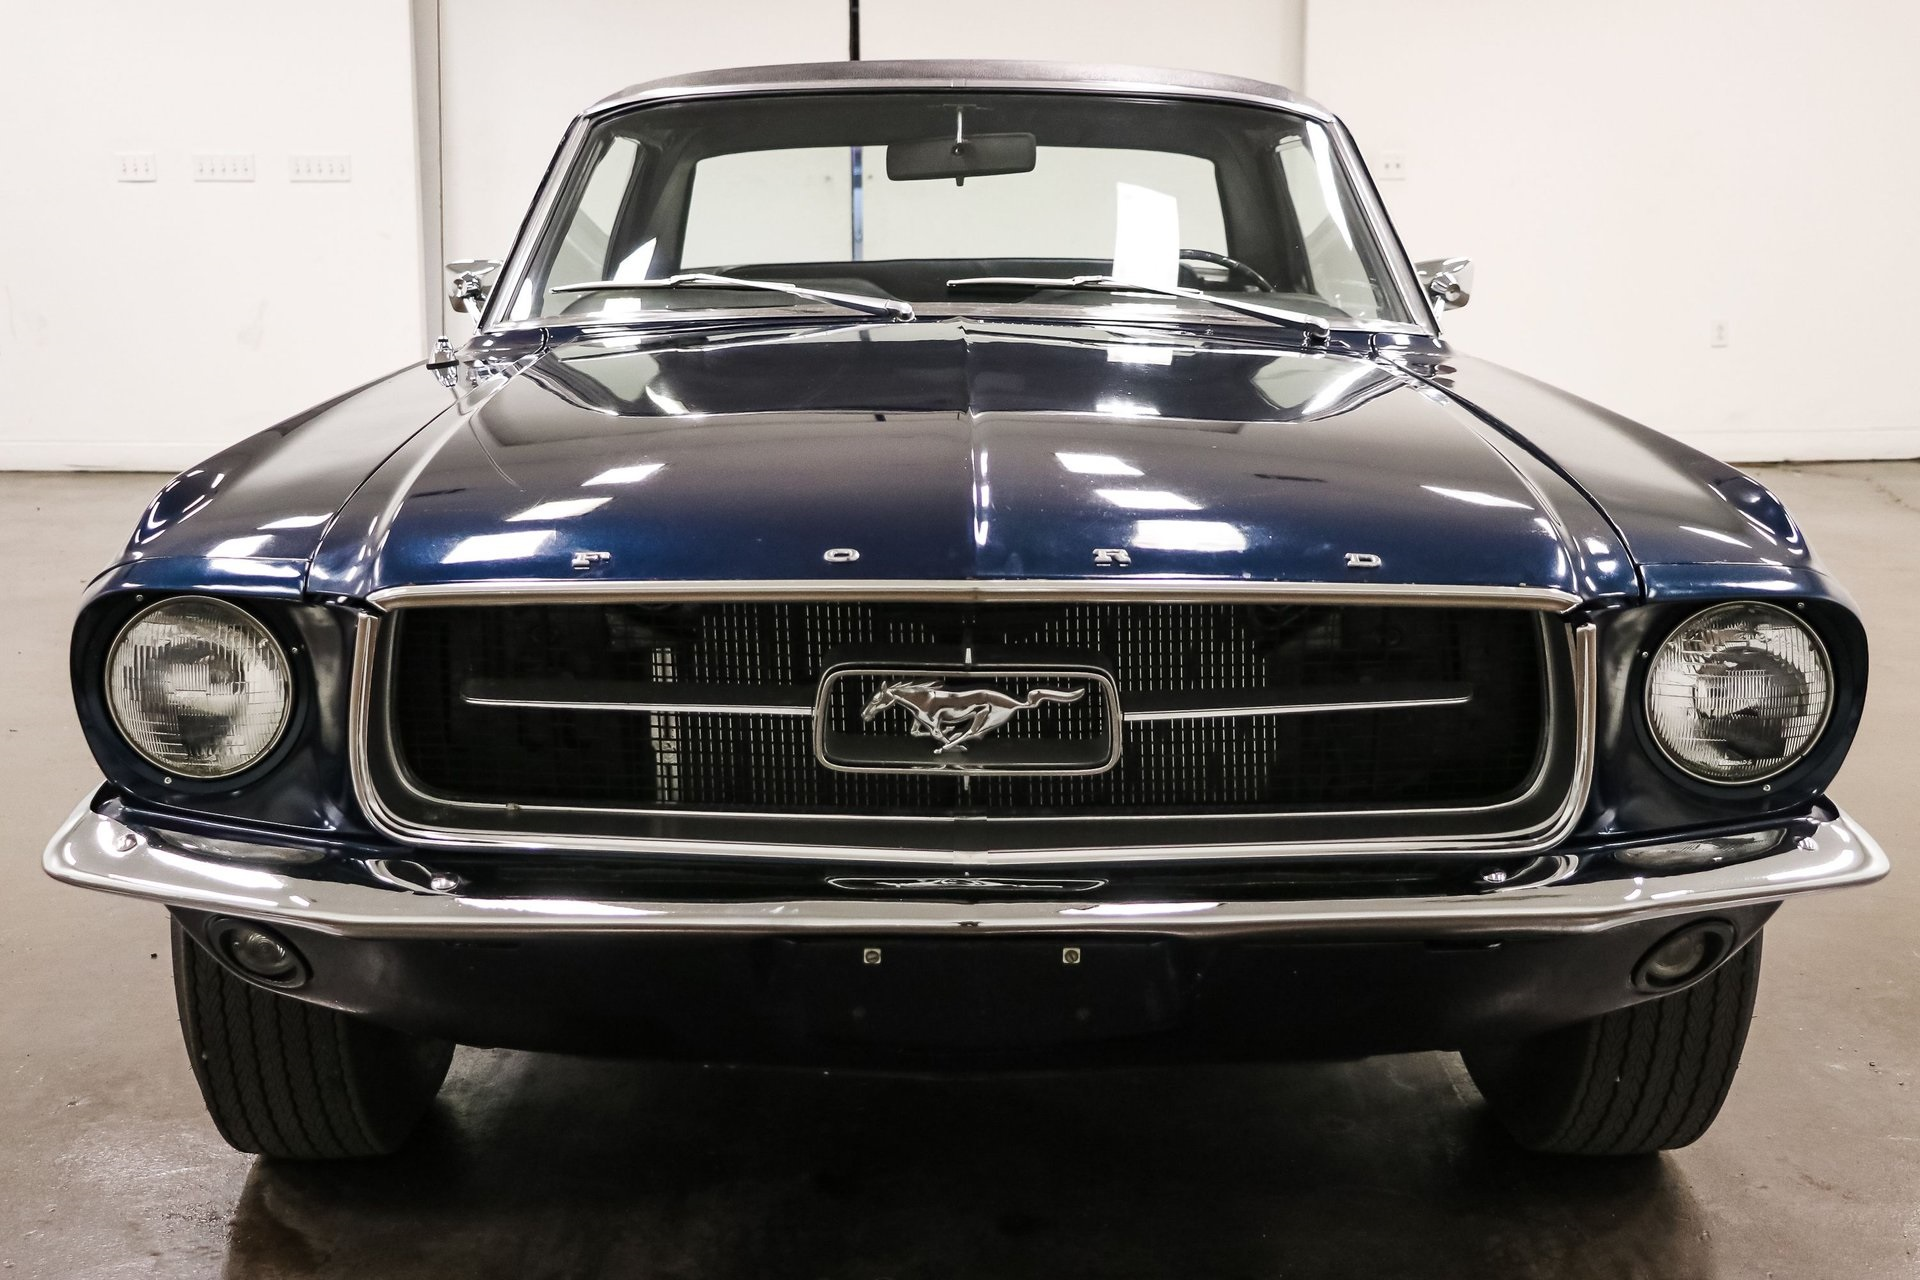 1967-ford-mustang-coupe-afkf2